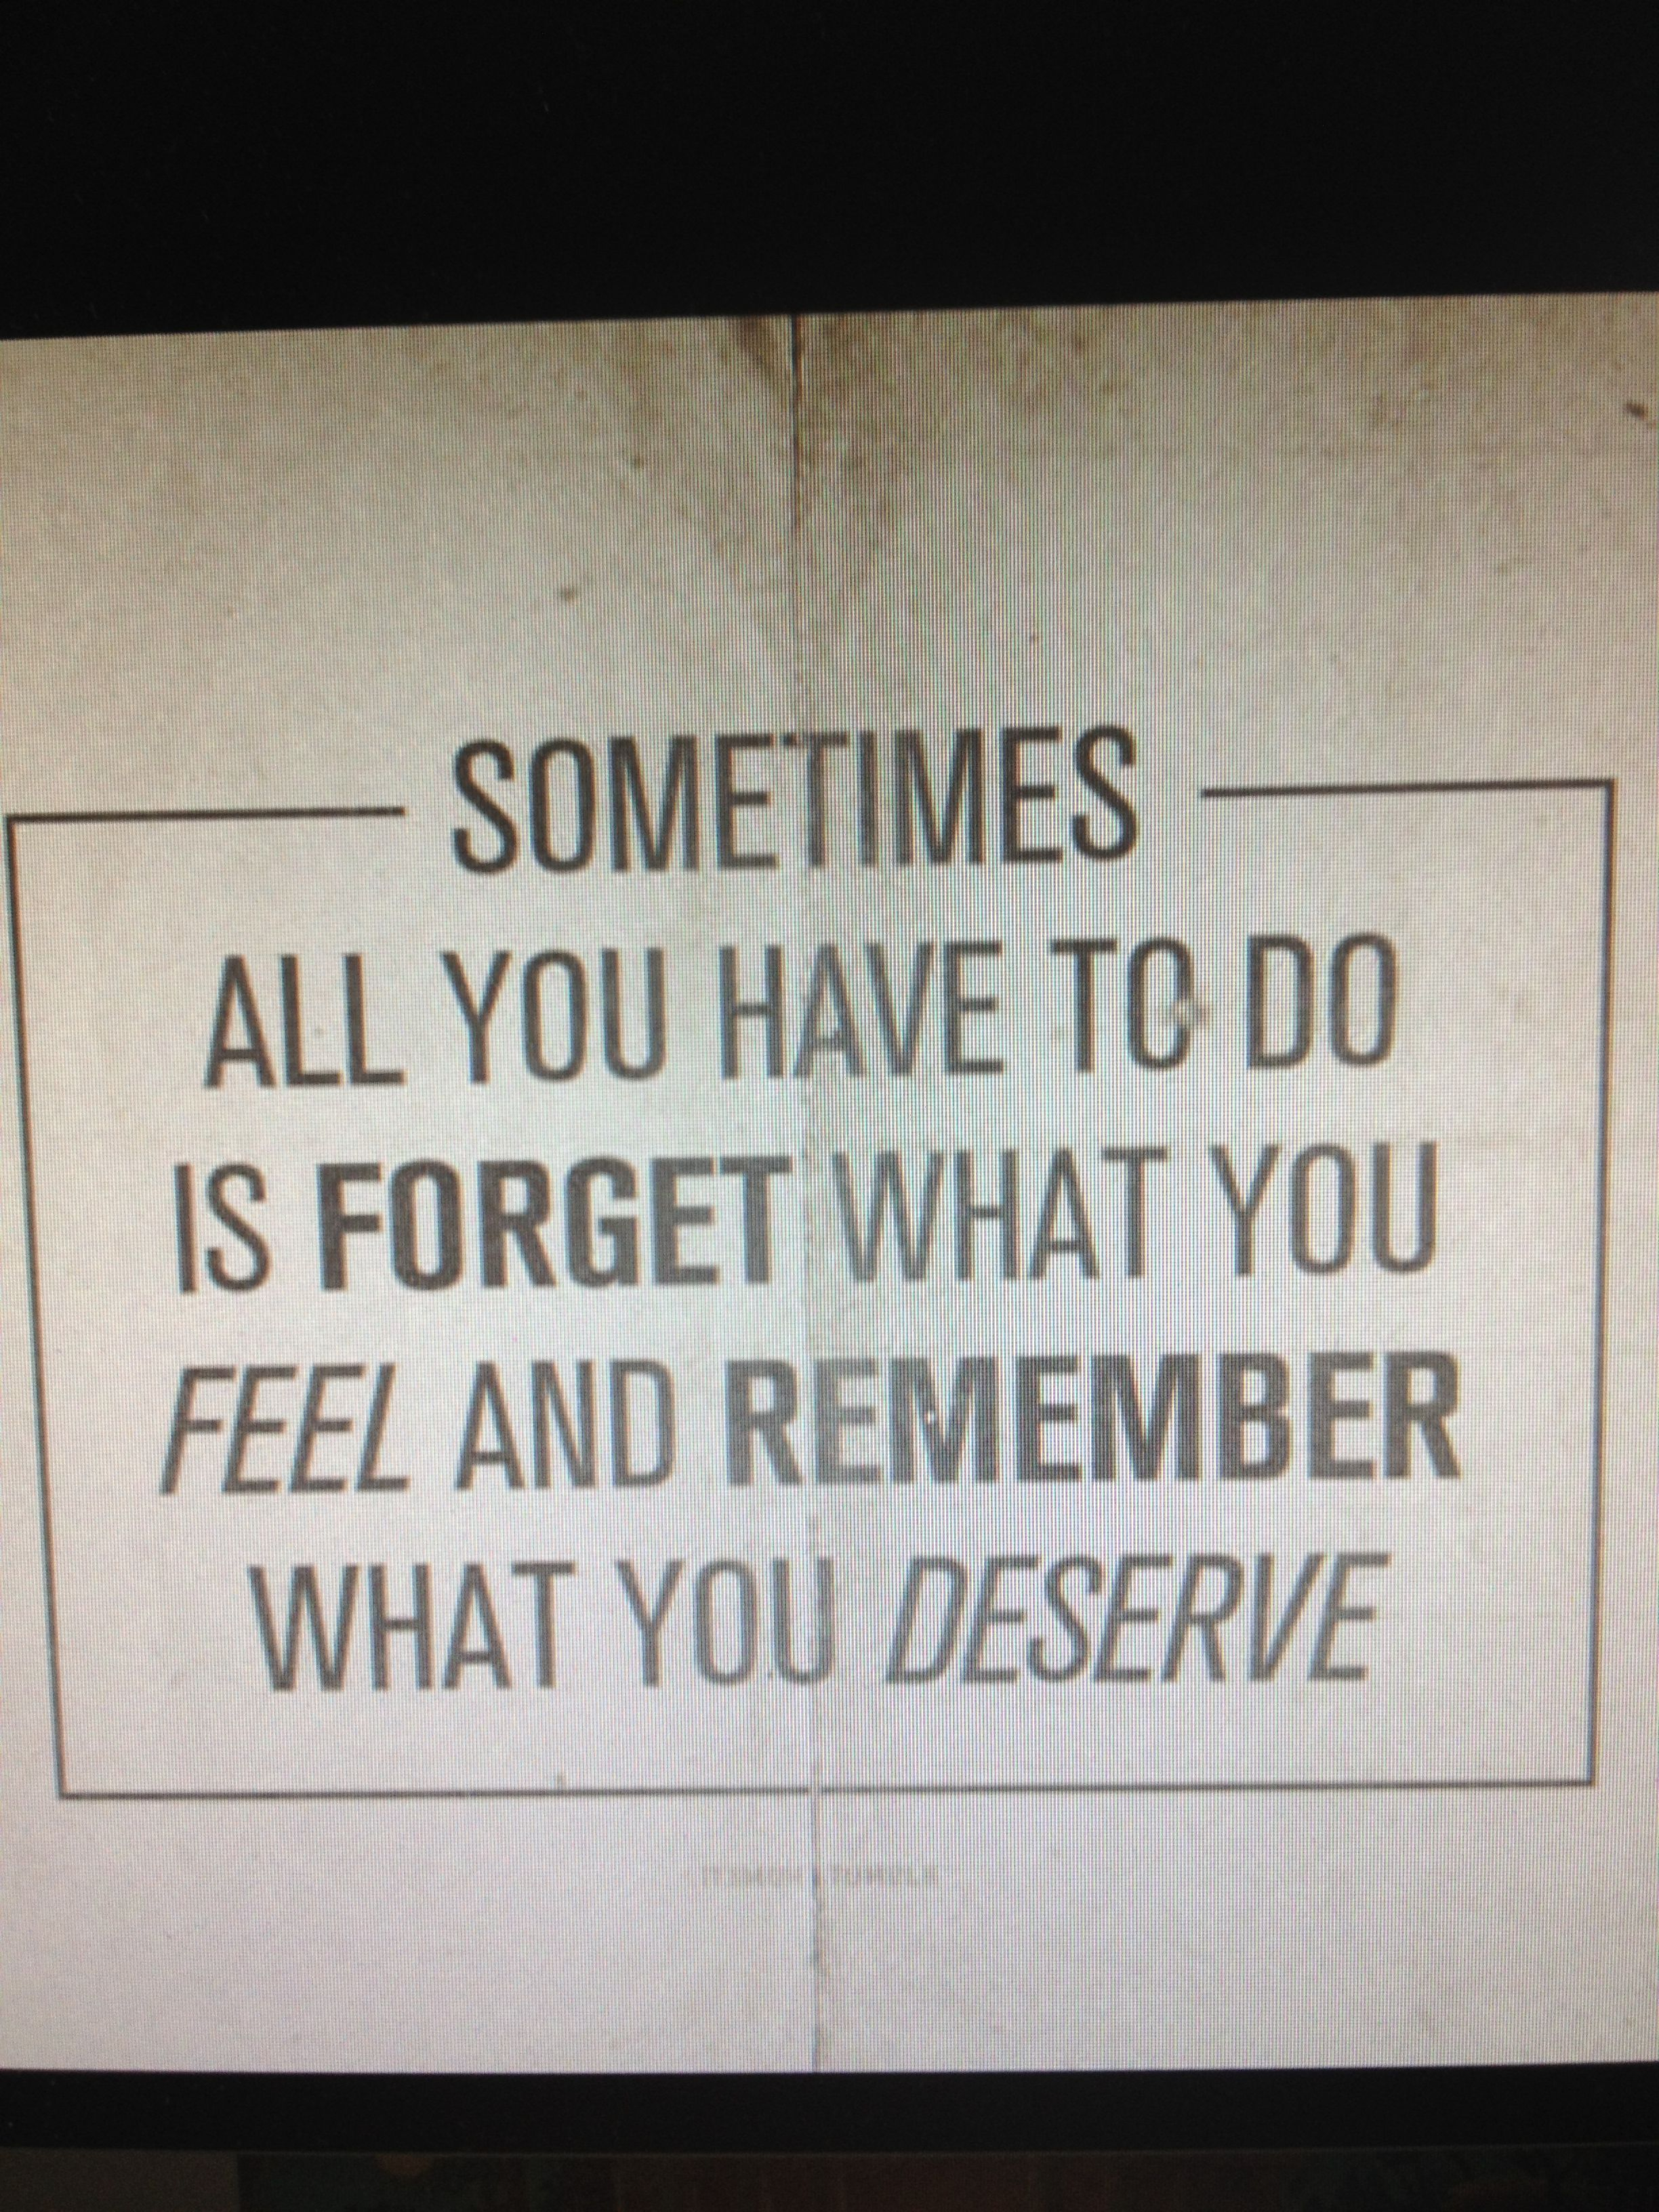 remember what you deserve | Inspirational divorce quotes